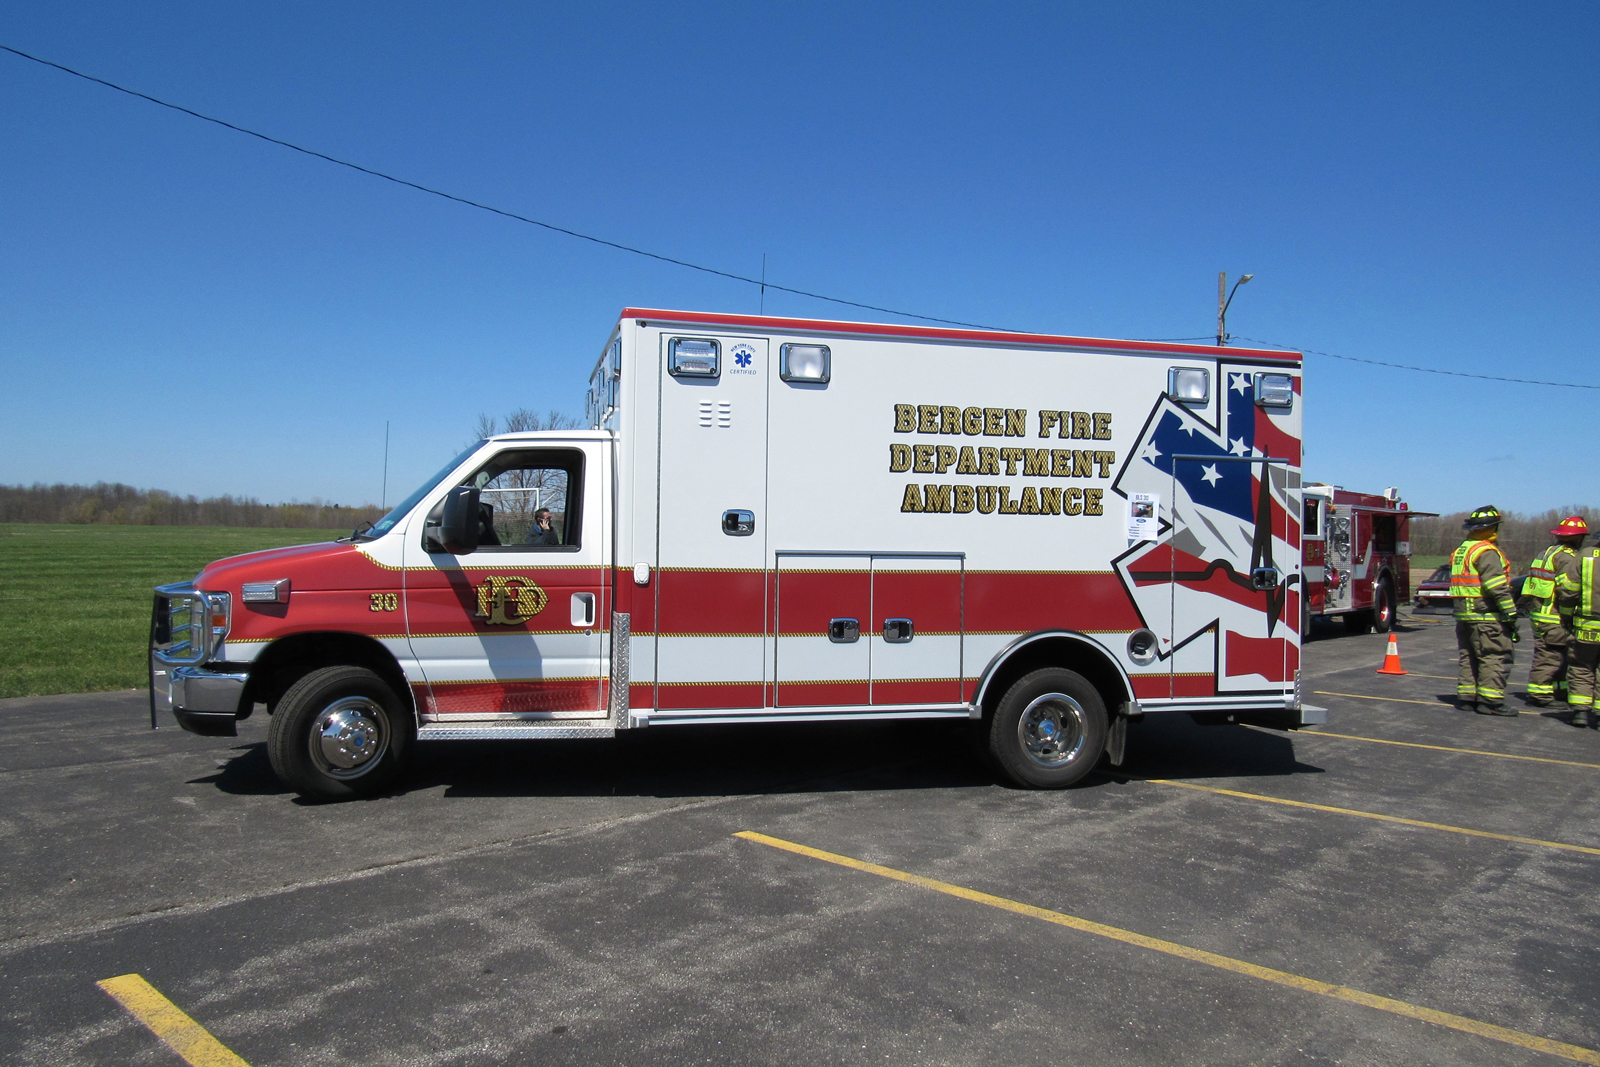 The new Bergen Fire Department ambulance dedicated in honor of fallen Bergen Fire Department/ EMS member Barry Miller sits outside the firehouse Saturday, April 23 for the motor vehicle accident/EMS demonstration. K. Gabalski photo